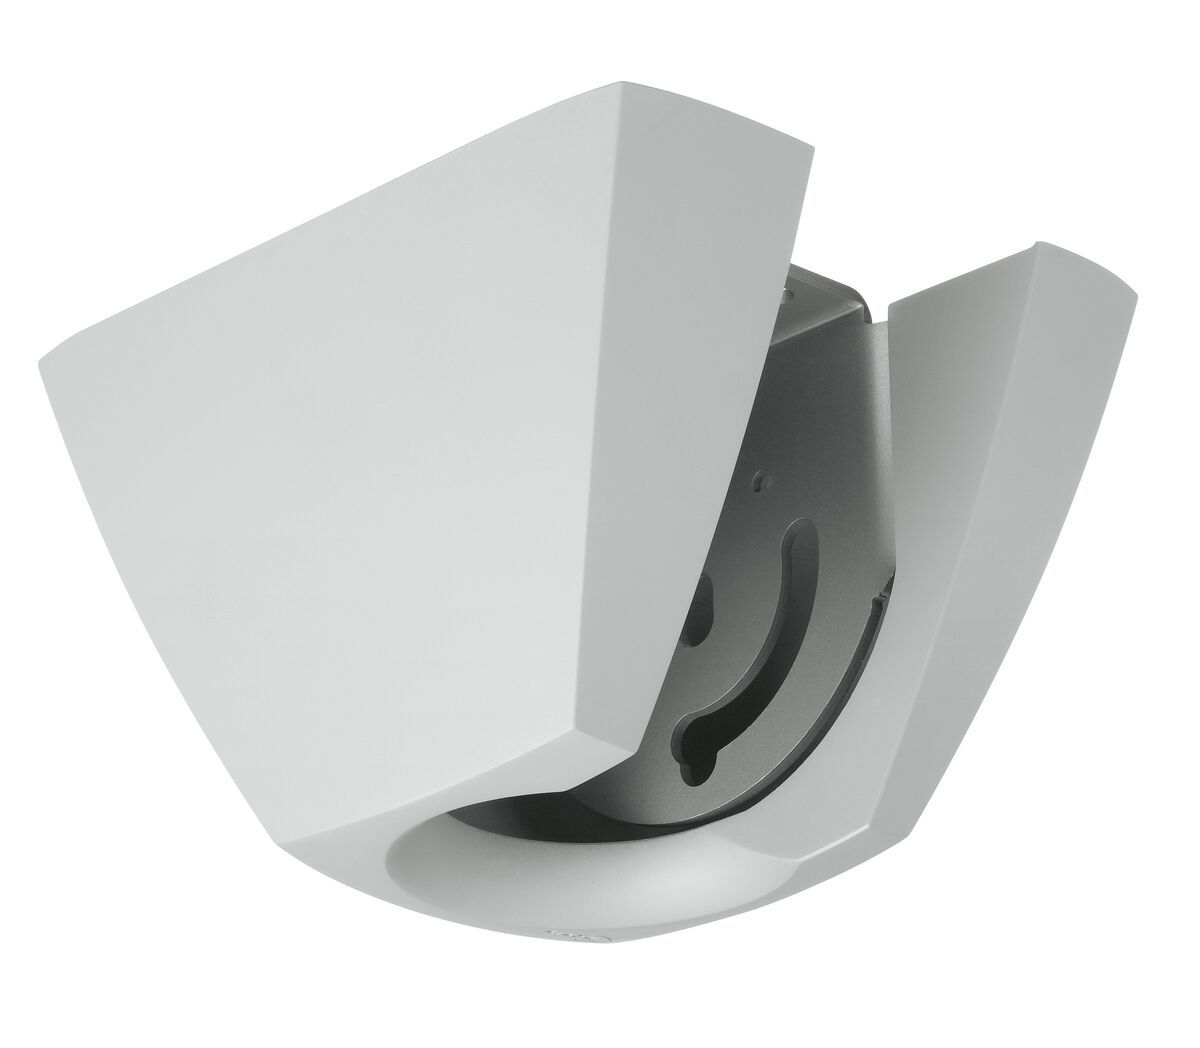 Vogel's PFA 9010 Ceiling plate - Product